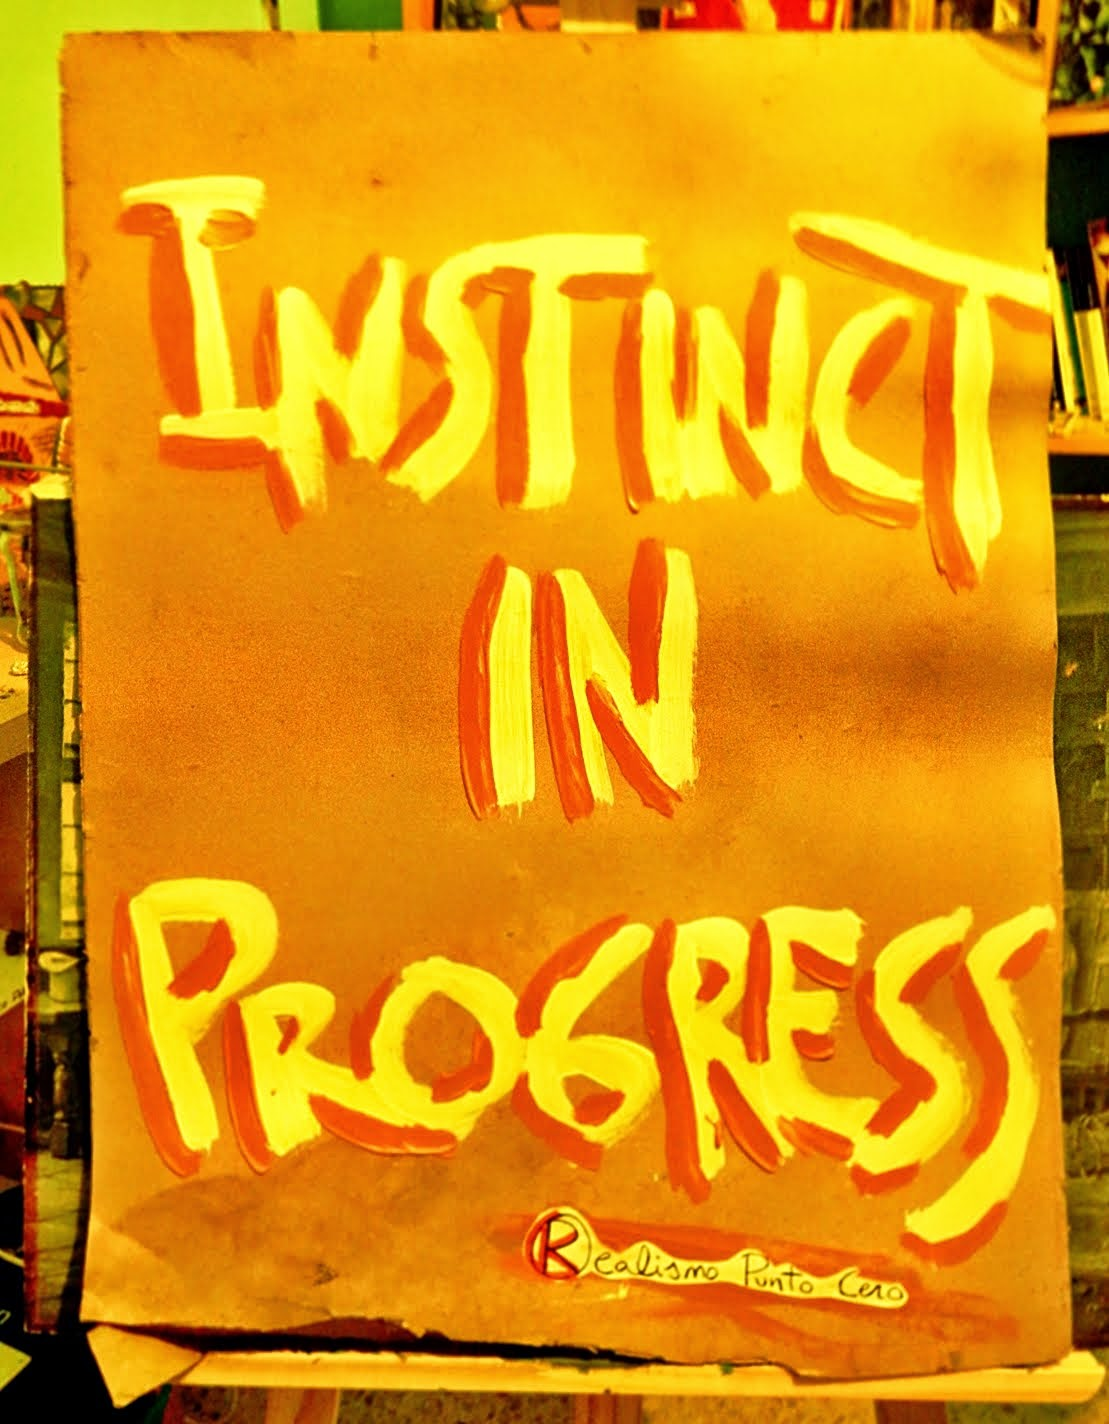 Instinct In Progress